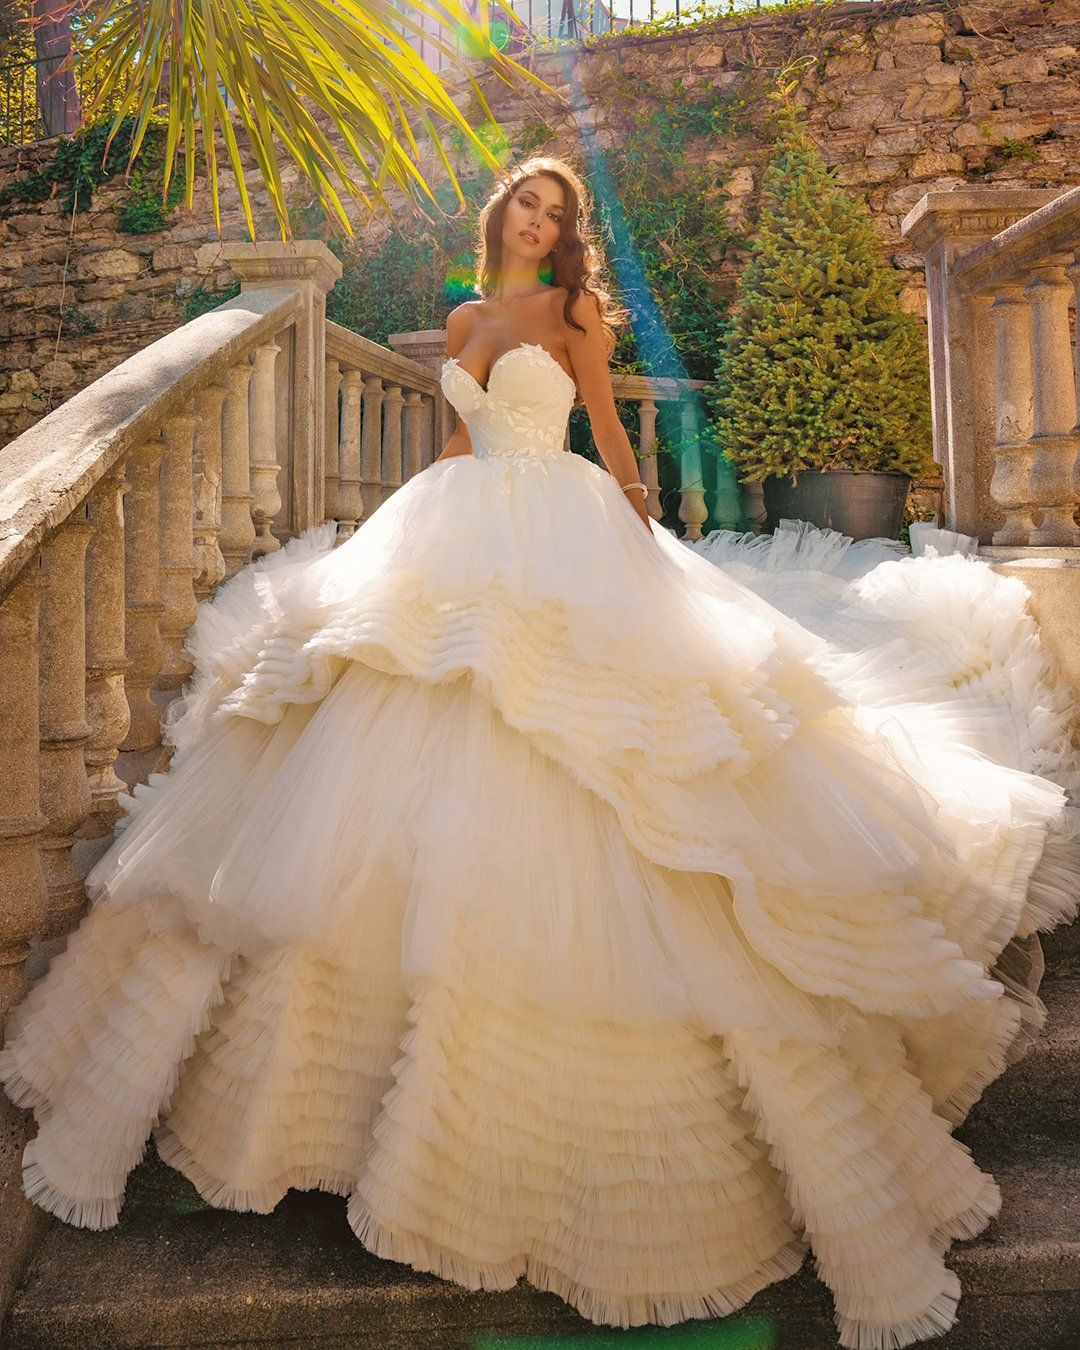 BALL GOWN WEDDING DRESSES FIT FOR A QUEEN